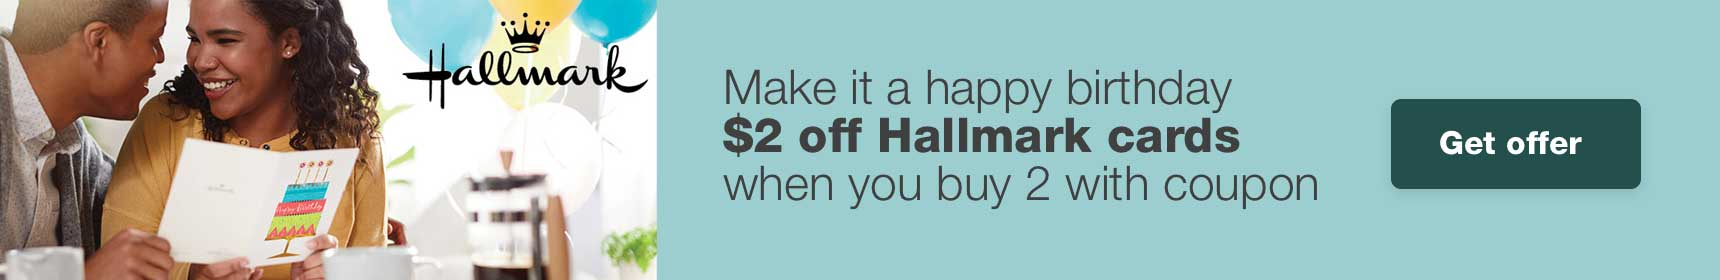 Make it a happy birthday. $2 off Hallmark cards when you buy 2 with coupon. Get offer.